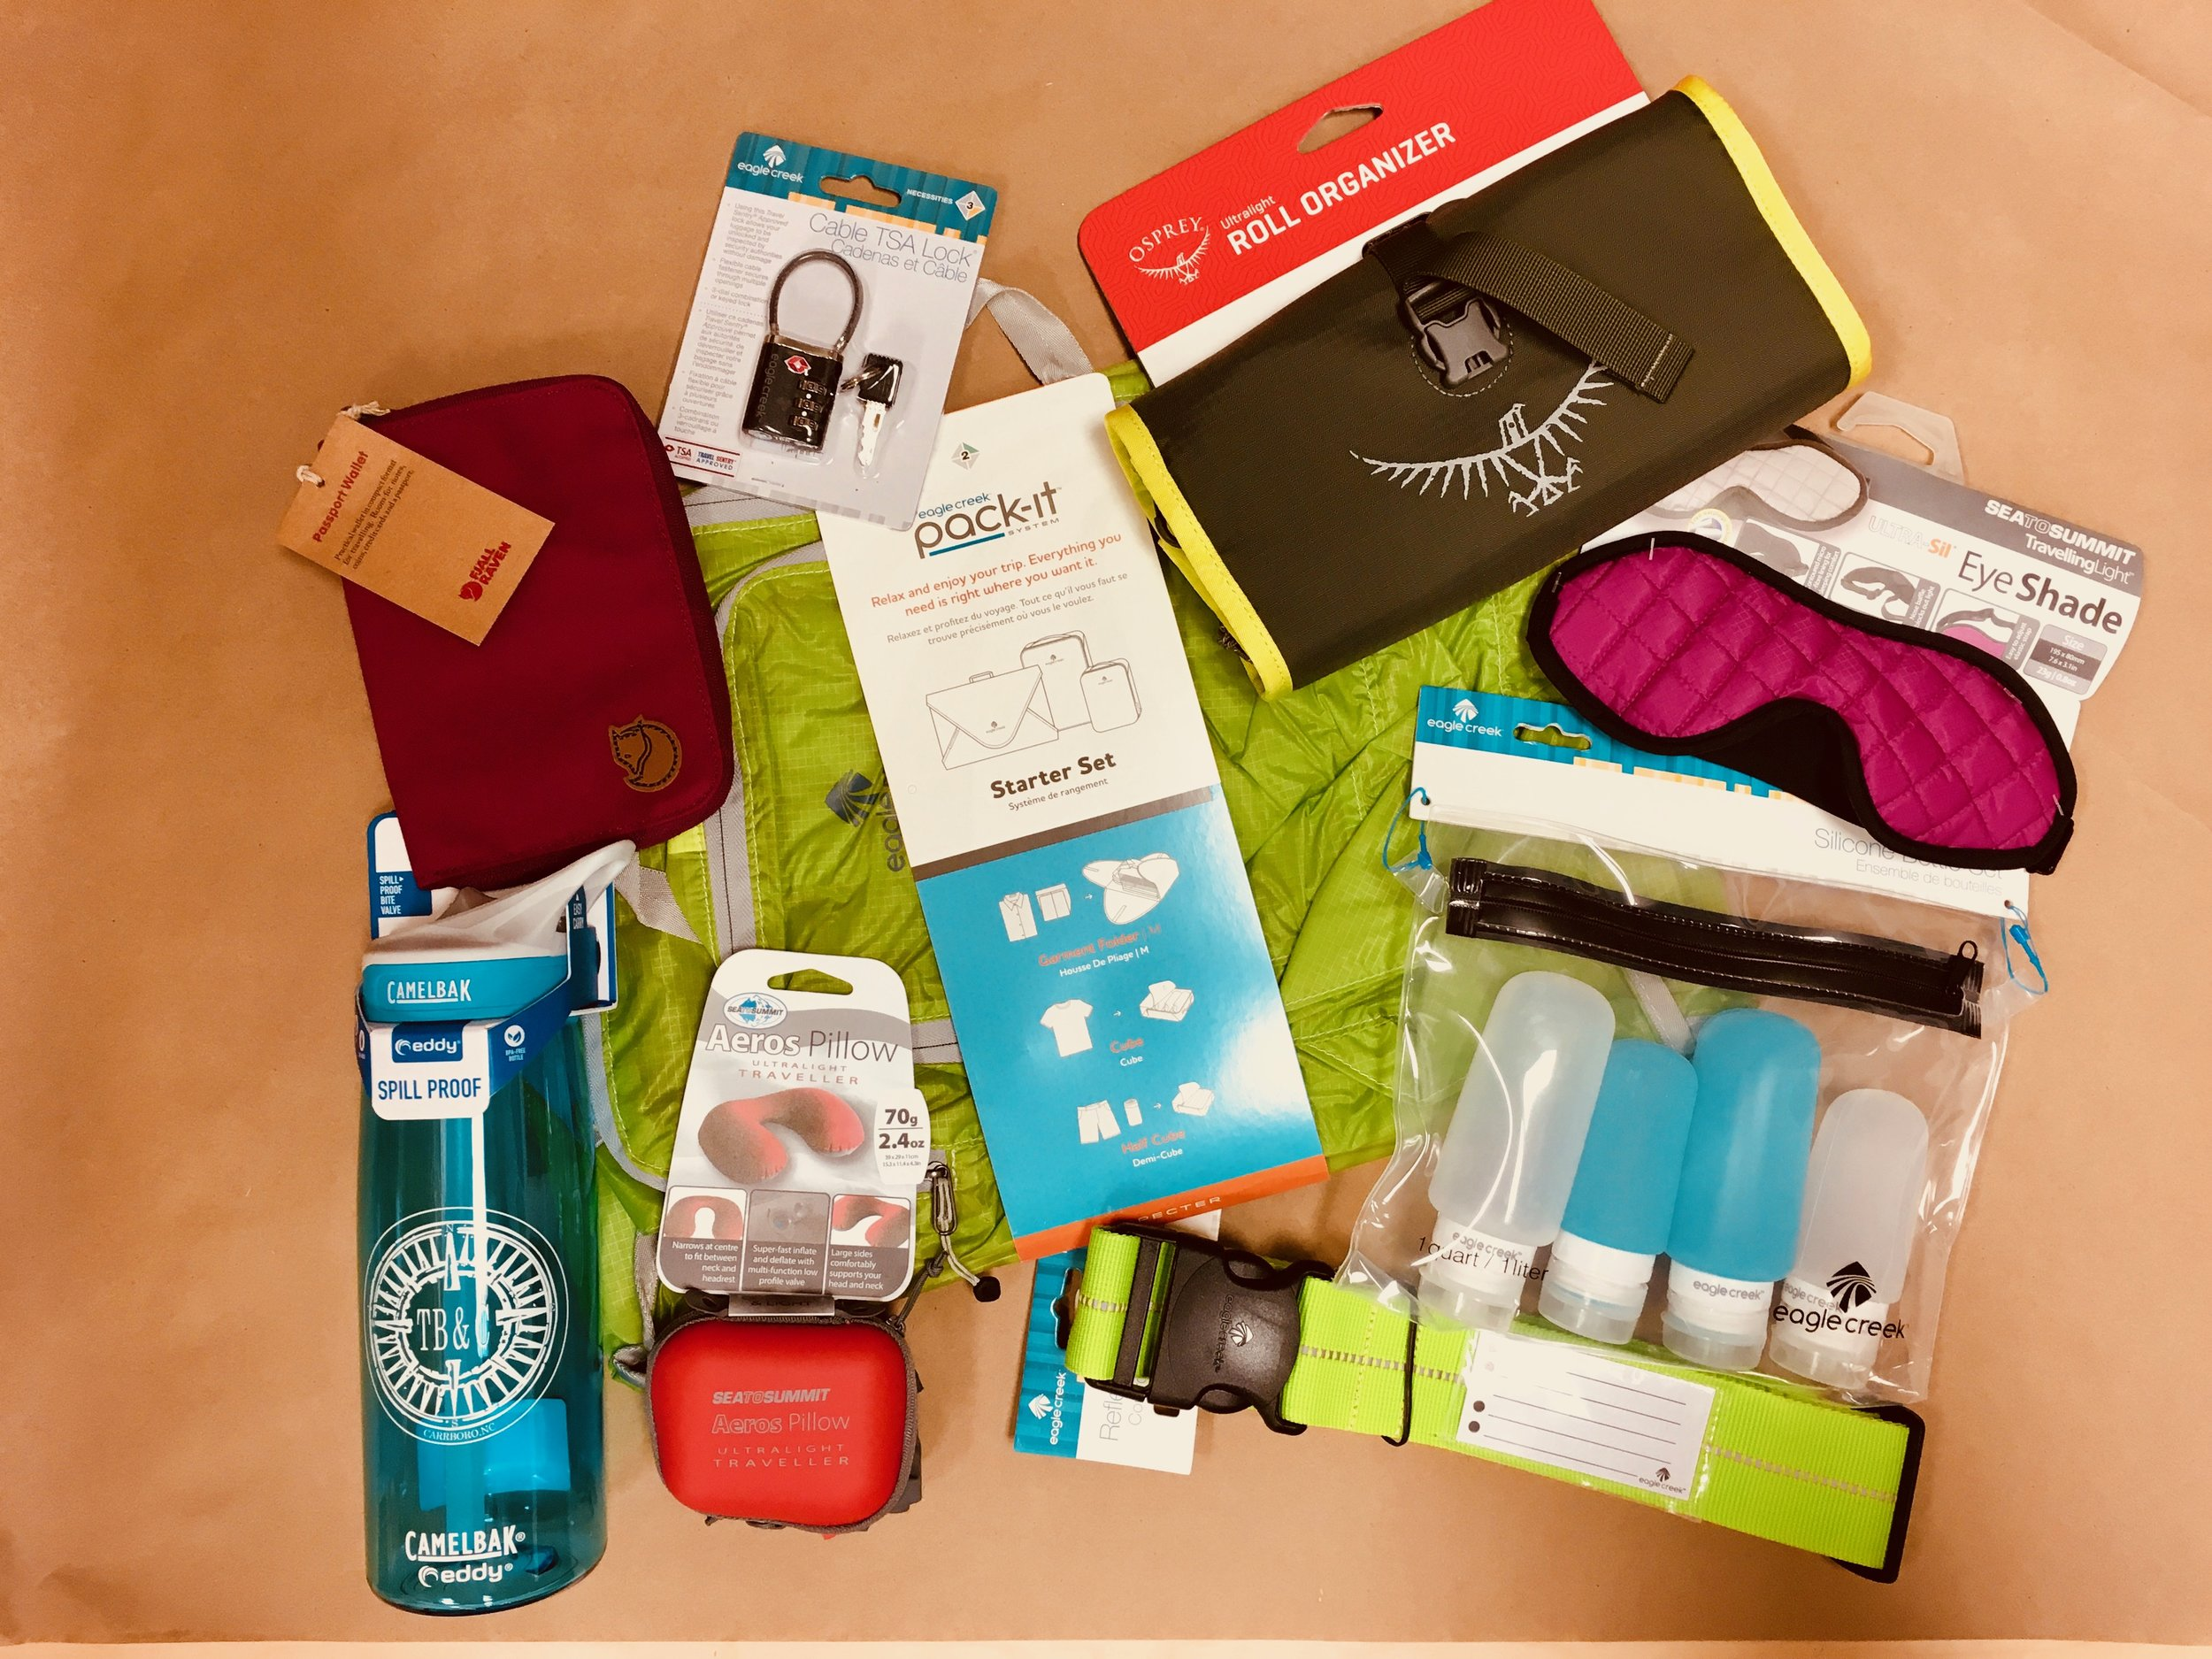 TRAVEL NECESSITIES -Great accessories for all the travelers in your life from Fjall Raven, Eagle Creek, Osprey, and Sea to Summit.